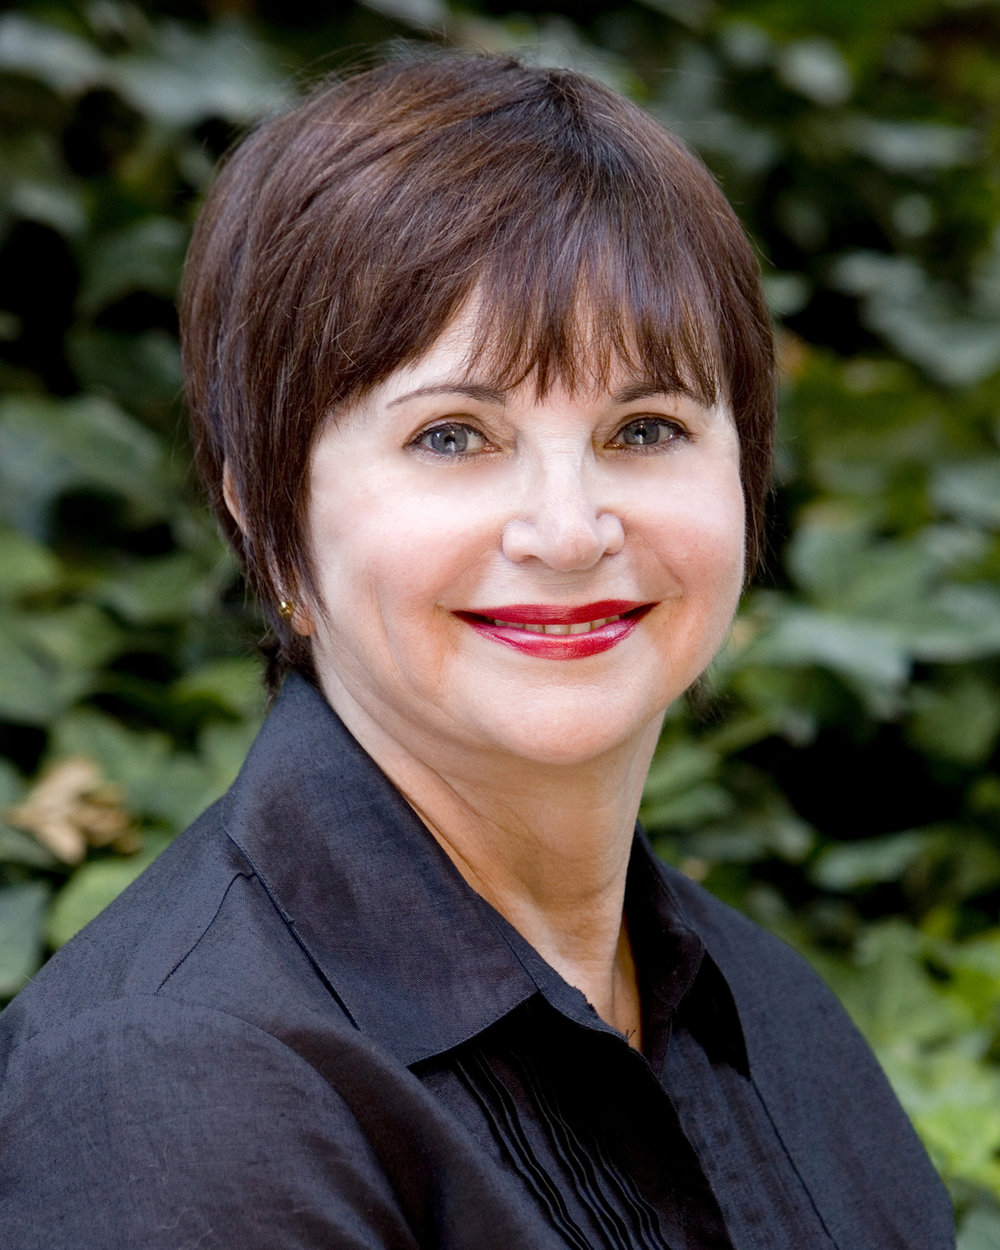 Cindy Williams from TV's Laverne & Shirley Joins the cast of Mom's Gift January 4 - 29, 2017